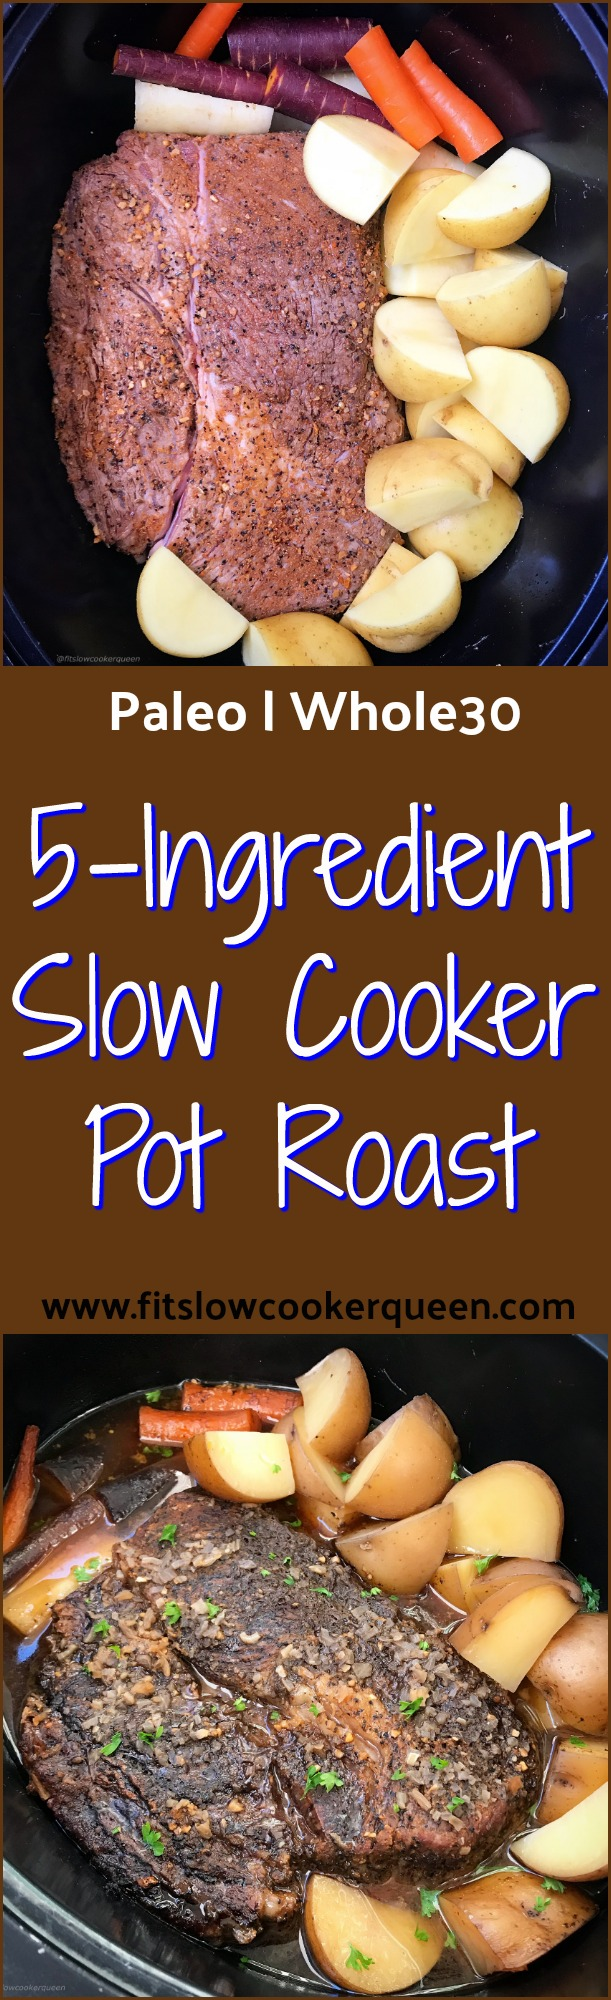 There are only 5 ingredients in this simple, healthy (both paleo and whole30 compliant) & flavorful slow cooker pot roast recipe.